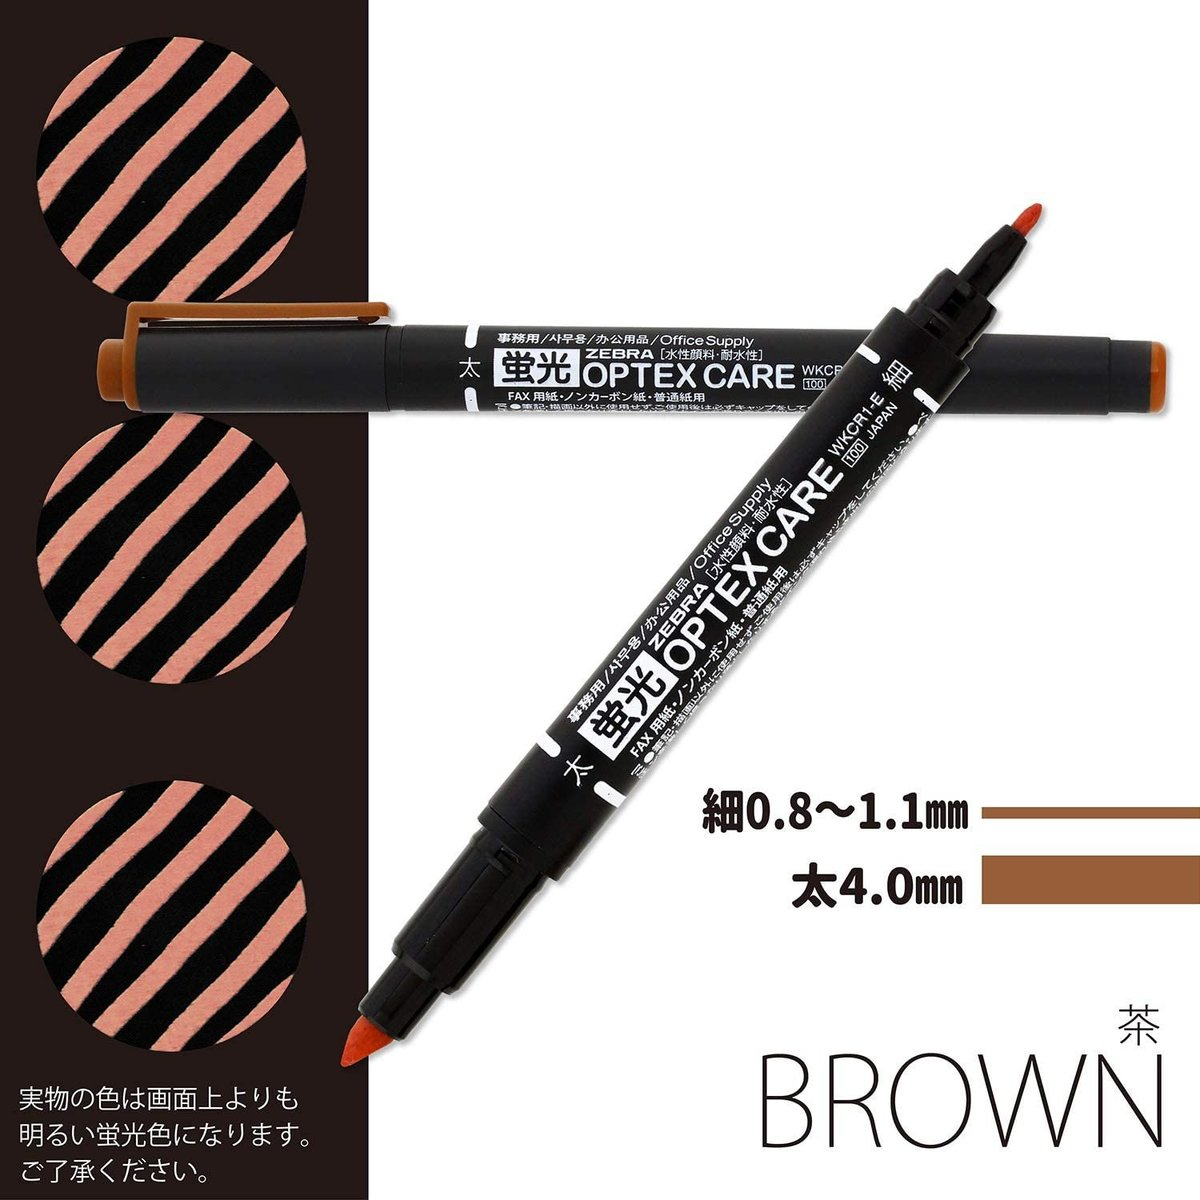 WKCR1-E Optex Care Highlighter [Brown] X 2pcs